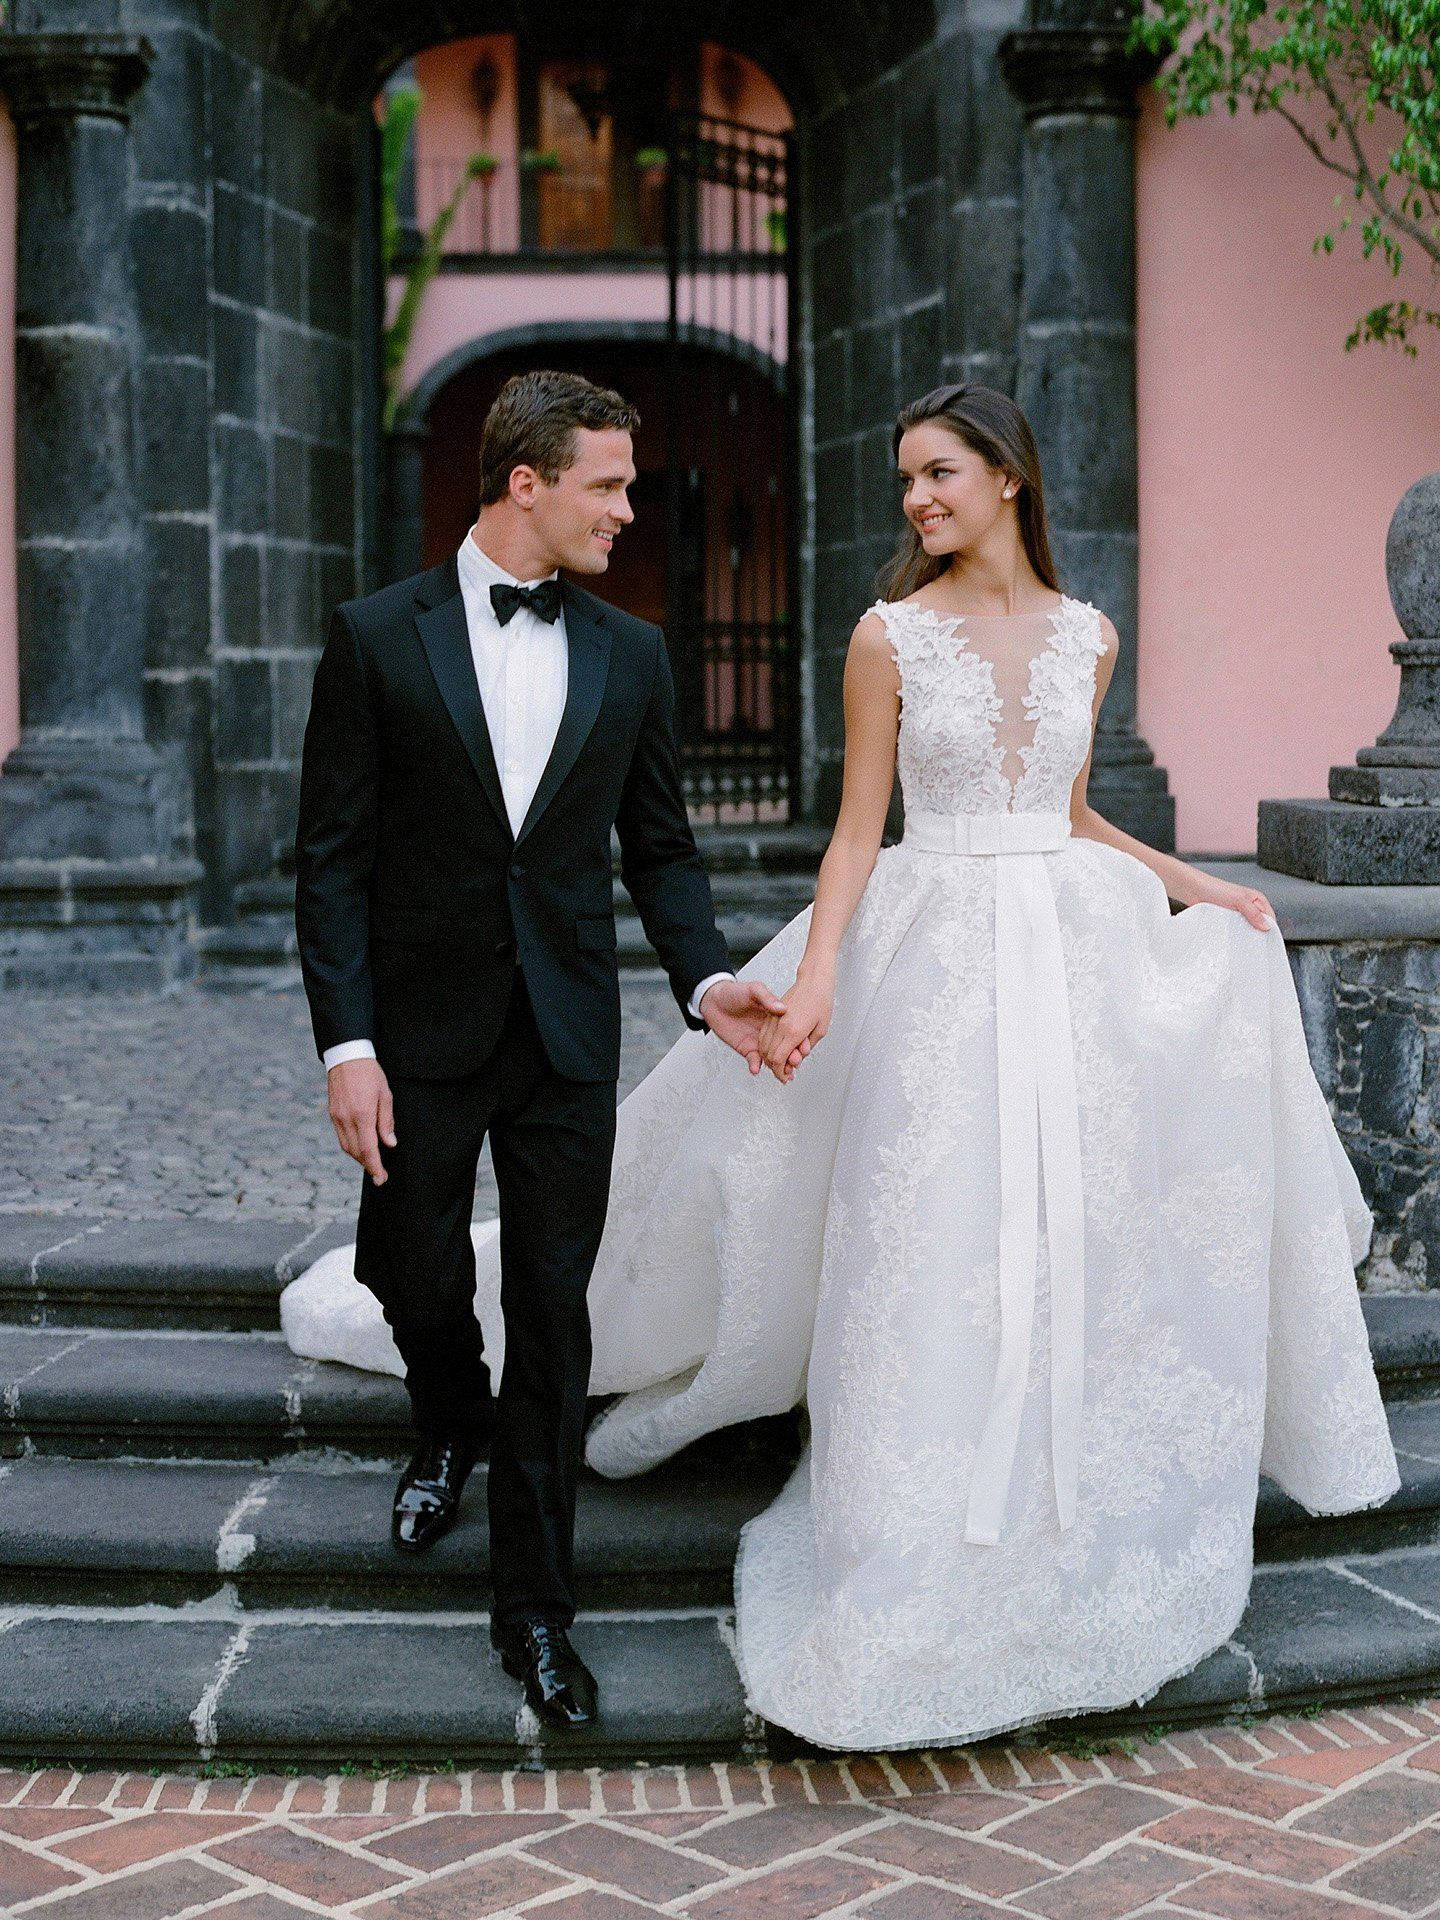 How Much Does Dry Cleaning A Wedding Dress Cost Fresh Kleinfeld Bridal In 2020 Wedding Dresses Lace Ball Gowns Wedding Wedding Dresses